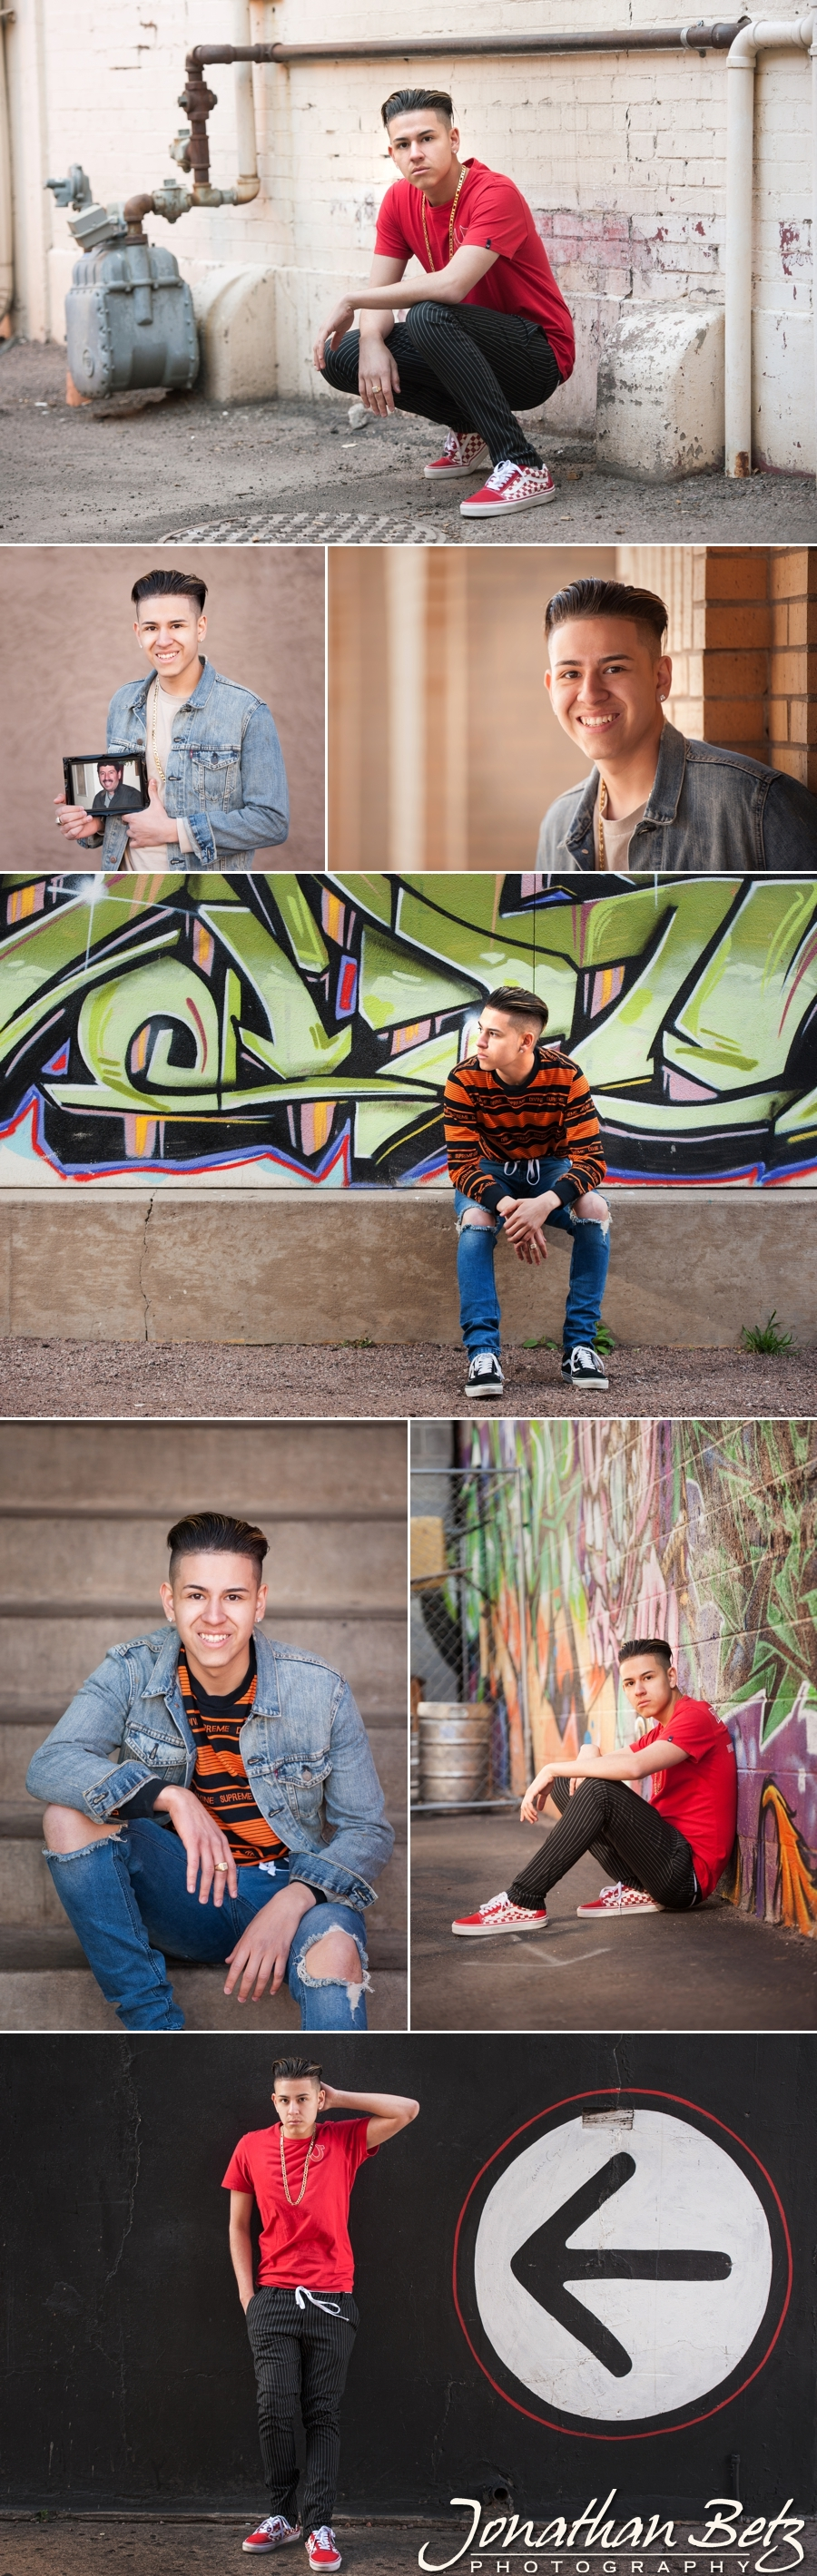 Colorado Springs High School Senior Portraits Jonathan Betz Photography 1